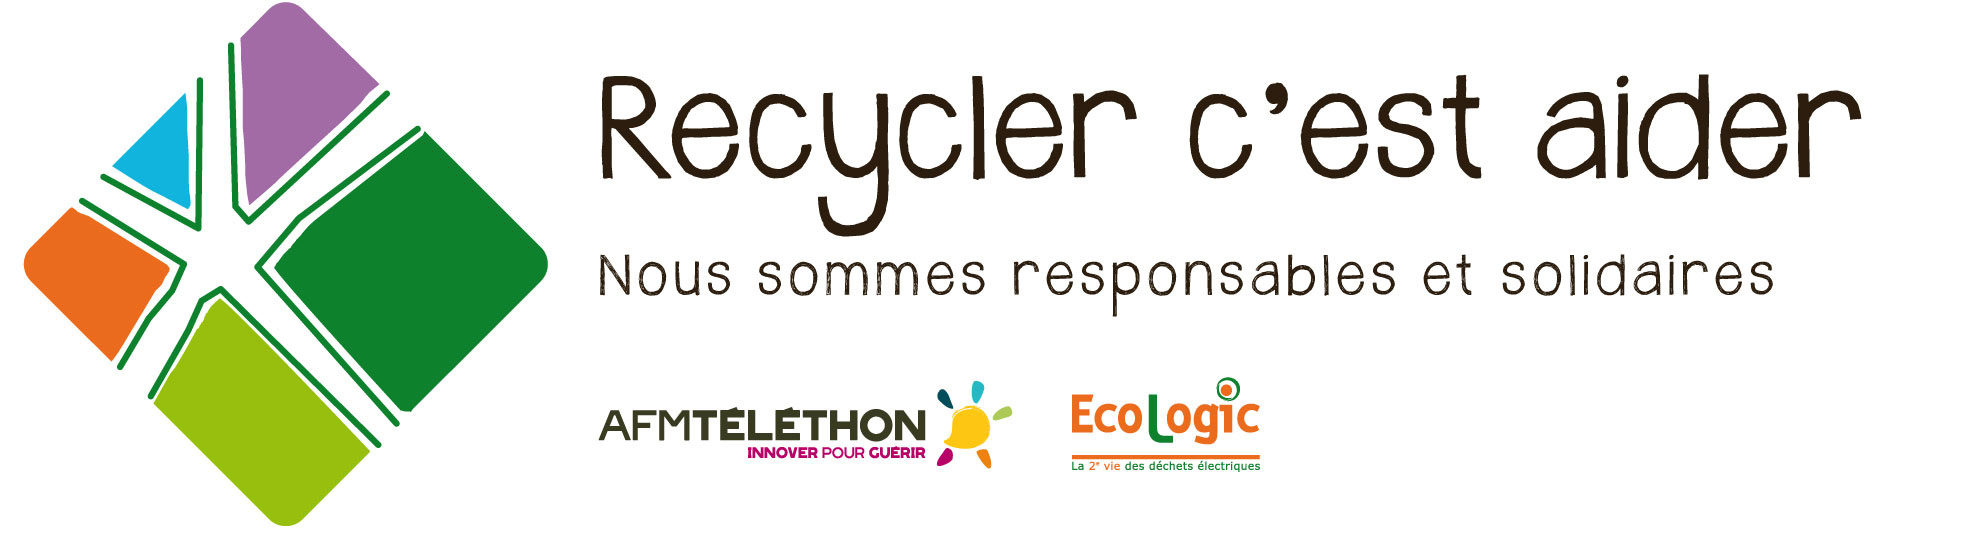 logo-recycler-cest-aider